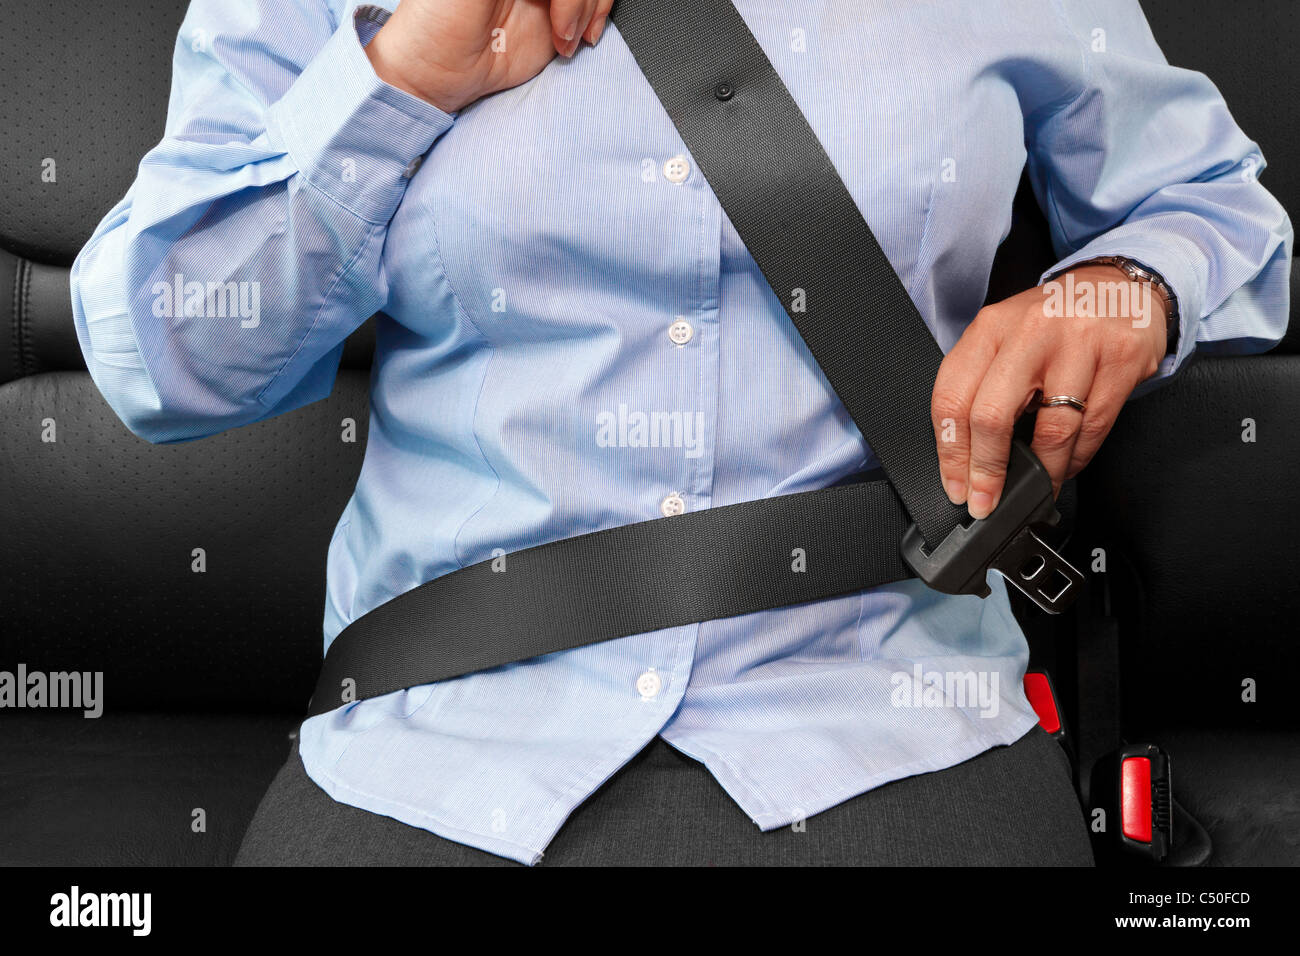 Photo of a business woman sitting in a car putting on her seat belt - Stock Image